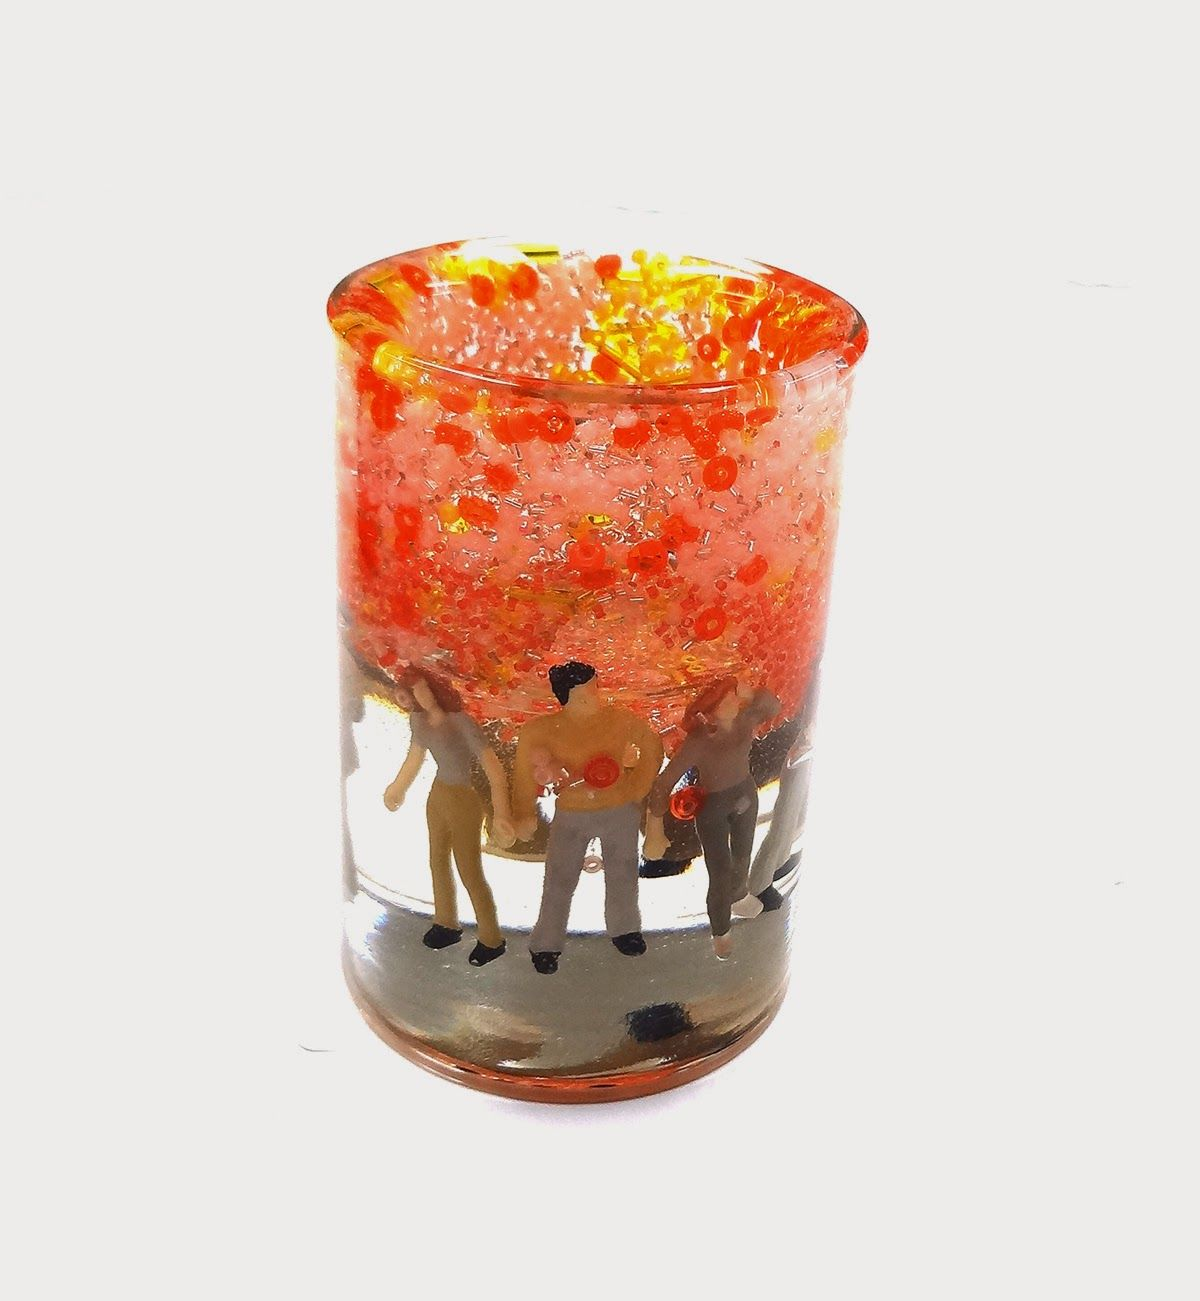 50+ Clear resin craft ideas info